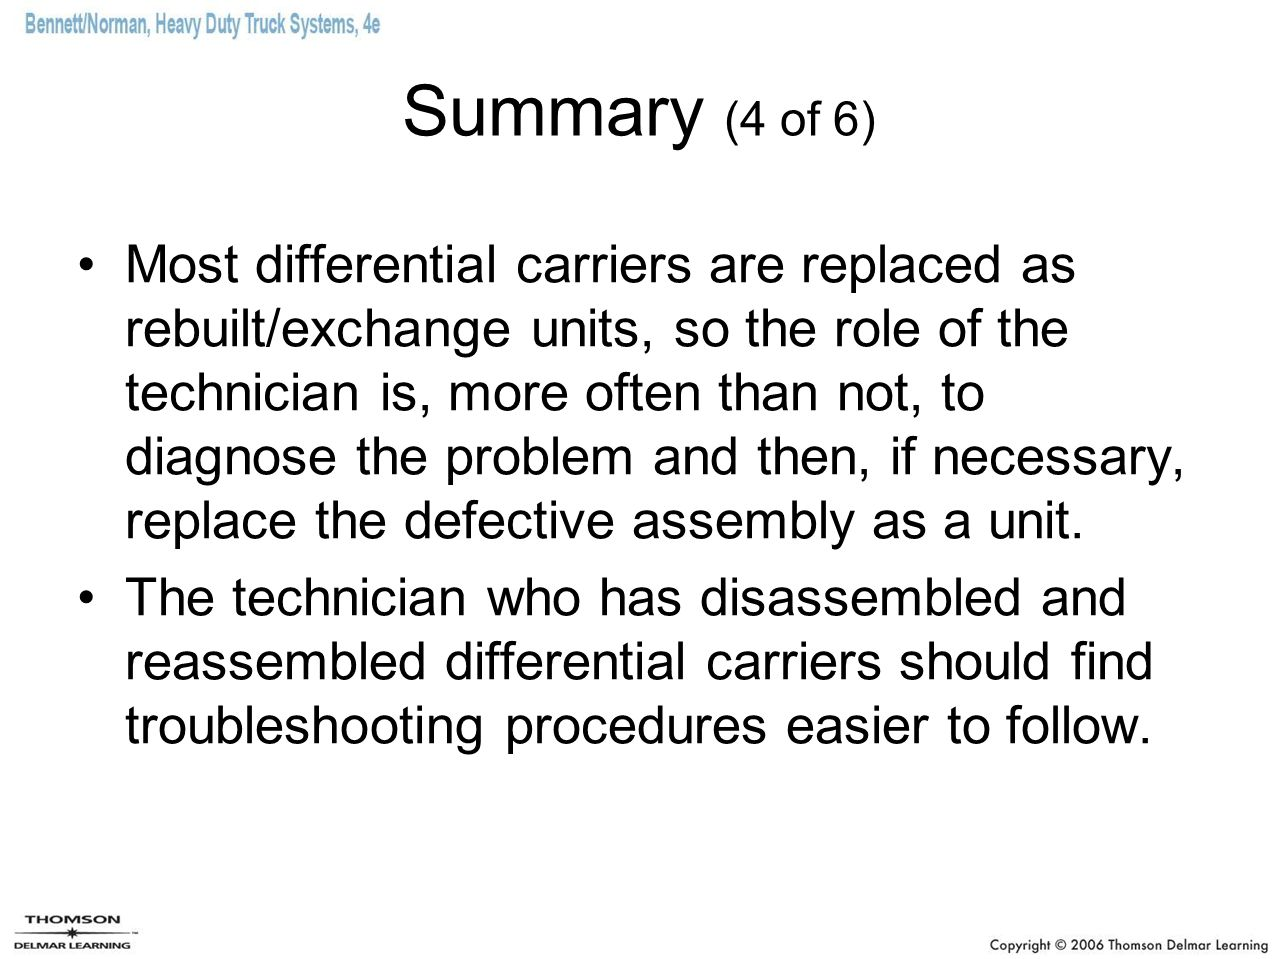 Summary (4 of 6) Most differential carriers are replaced as rebuilt/exchange units, so the role of the technician is, more often than not, to diagnose the problem and then, if necessary, replace the defective assembly as a unit.